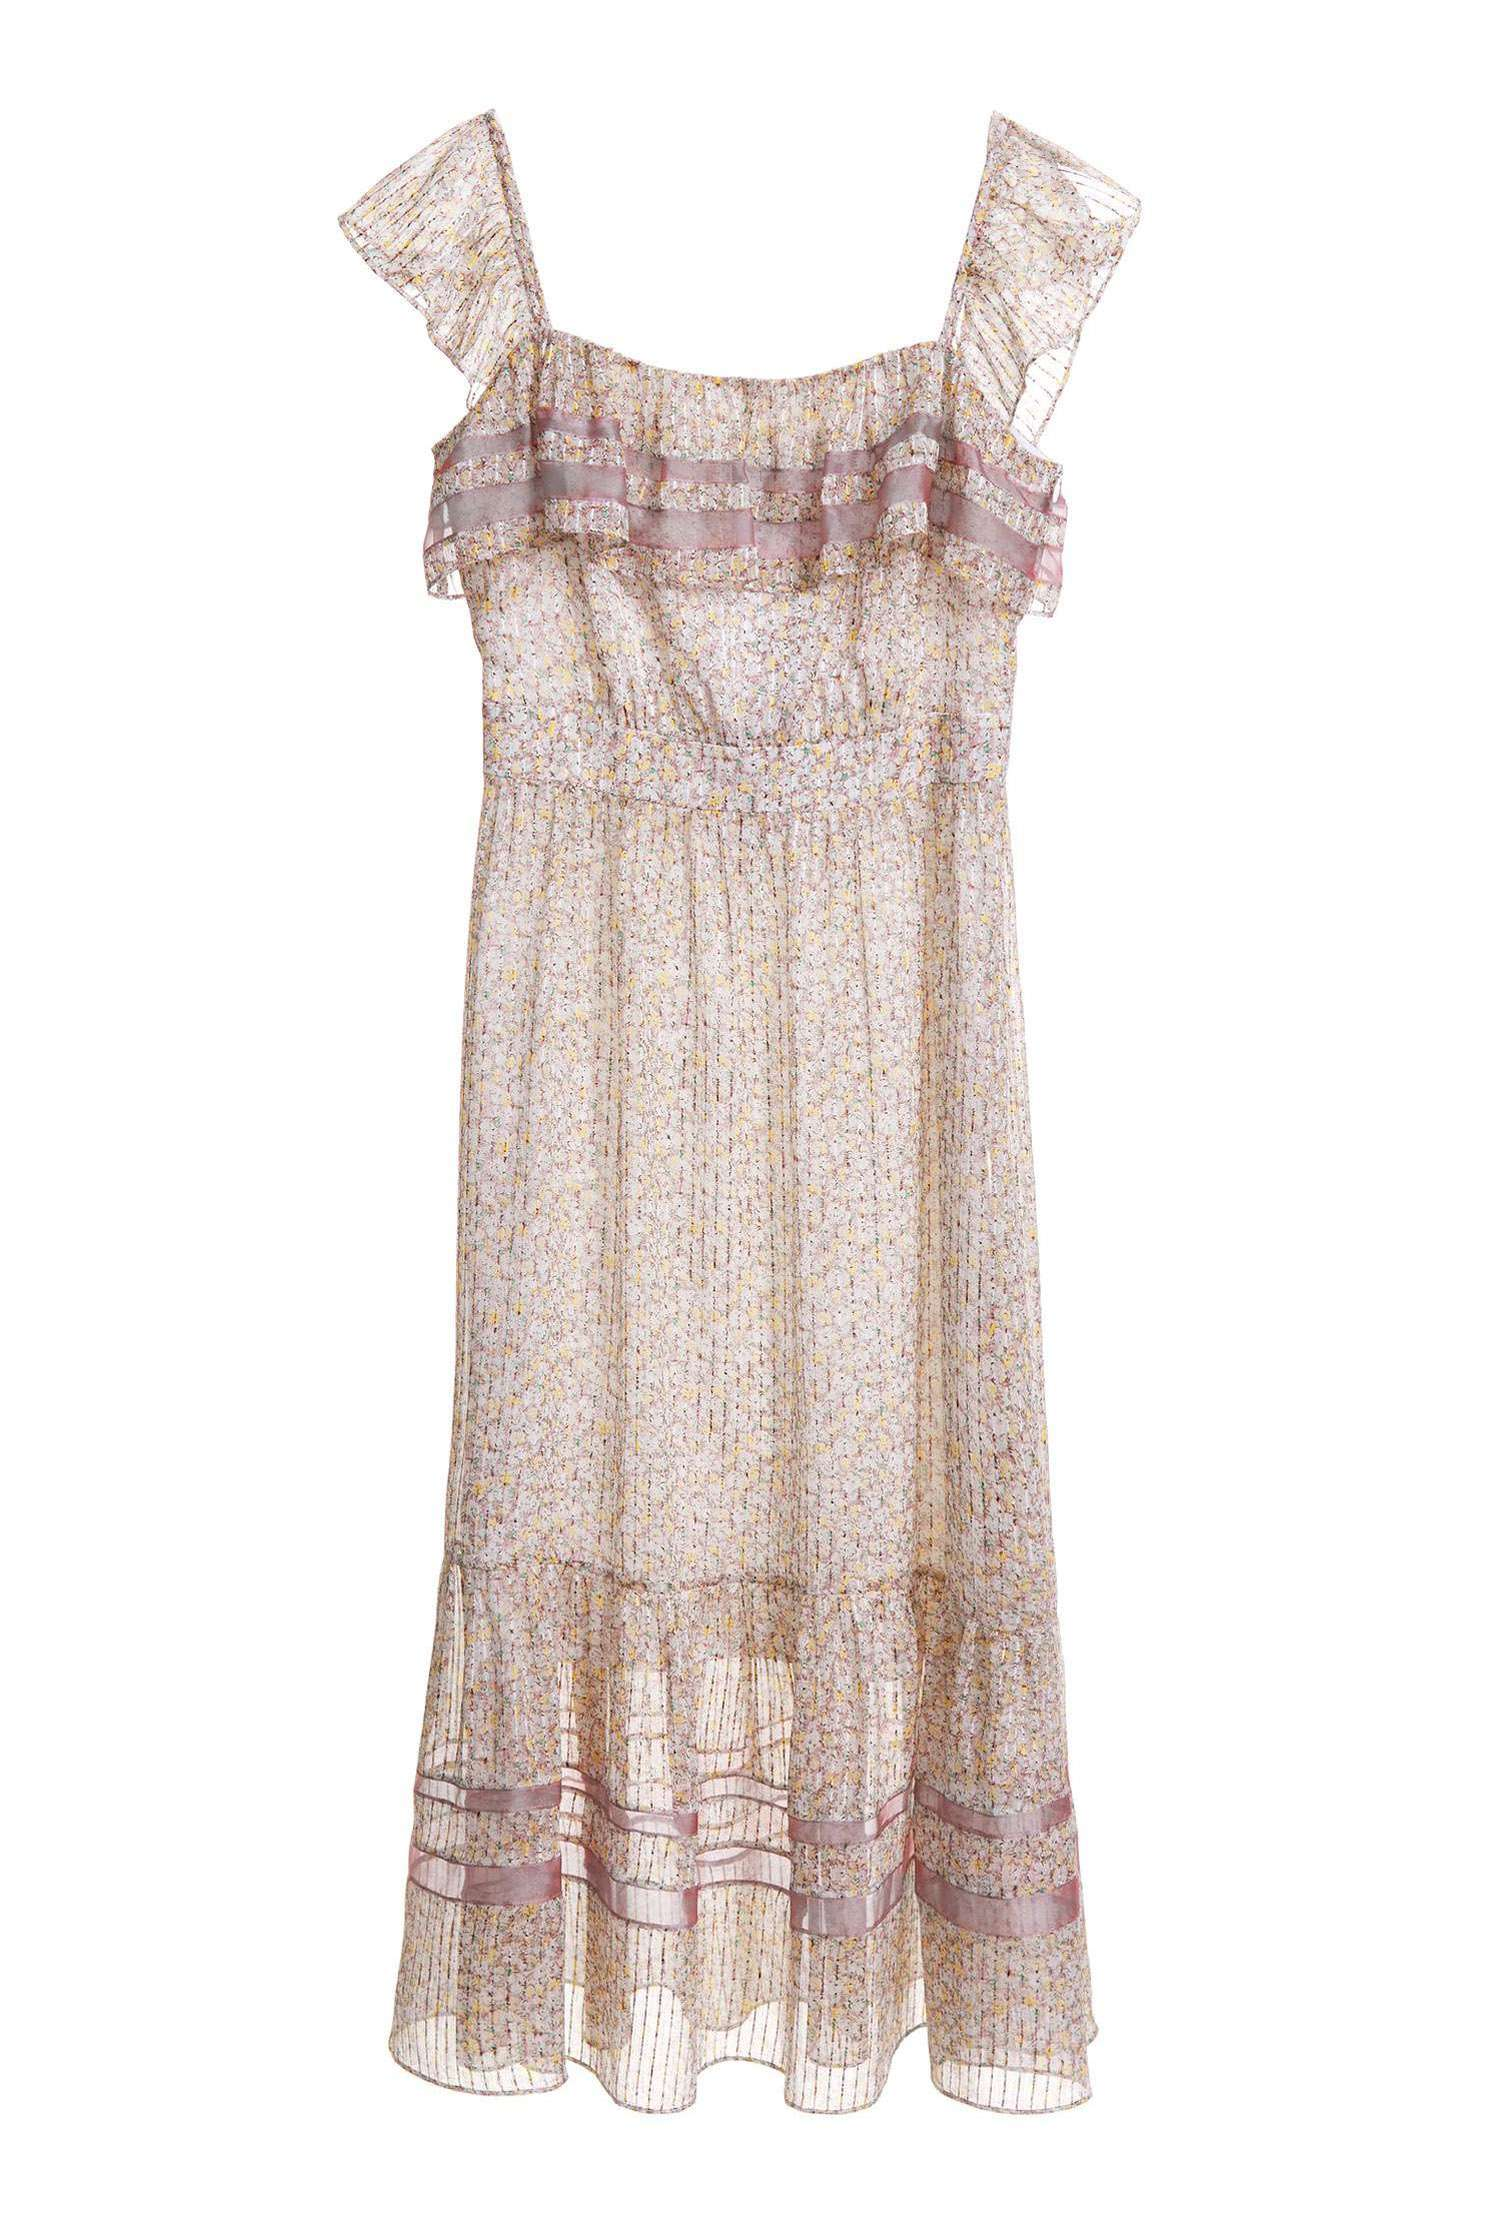 Ribbon dress with small floral print